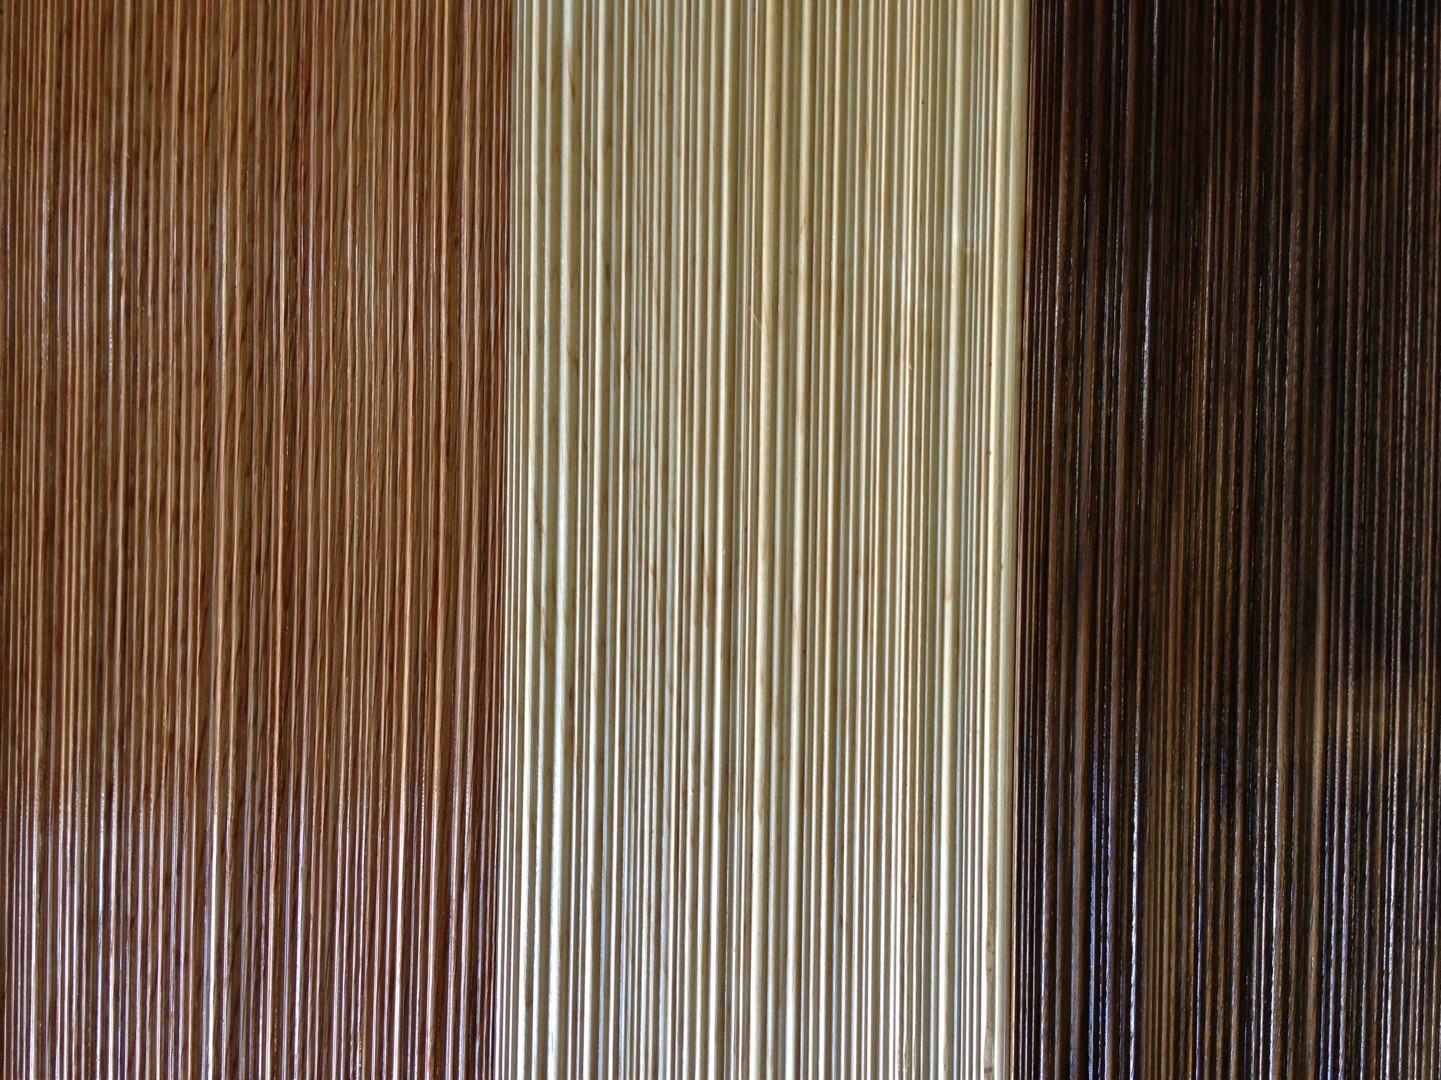 Striated Hardwoods